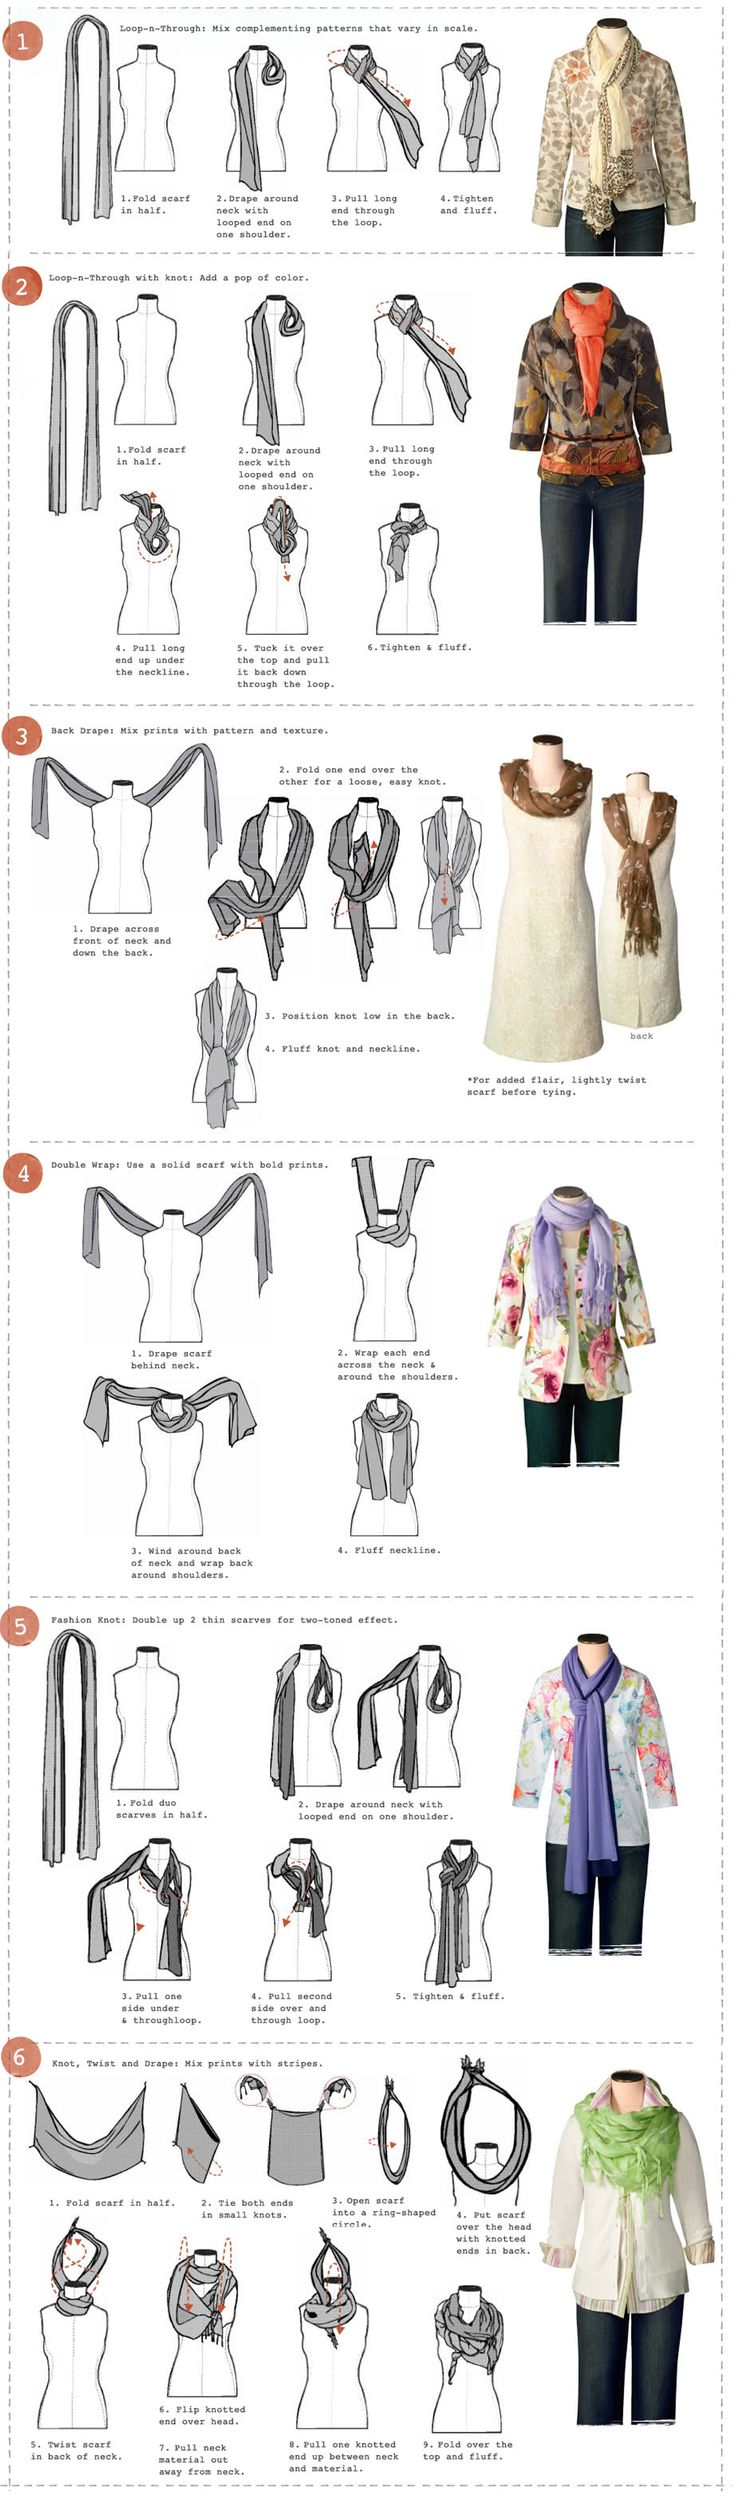 You have your scarf, now you need a fabulous way to tie it. We show you step by step instructions of 6 ways to tie your rectangle scarves to perfection.